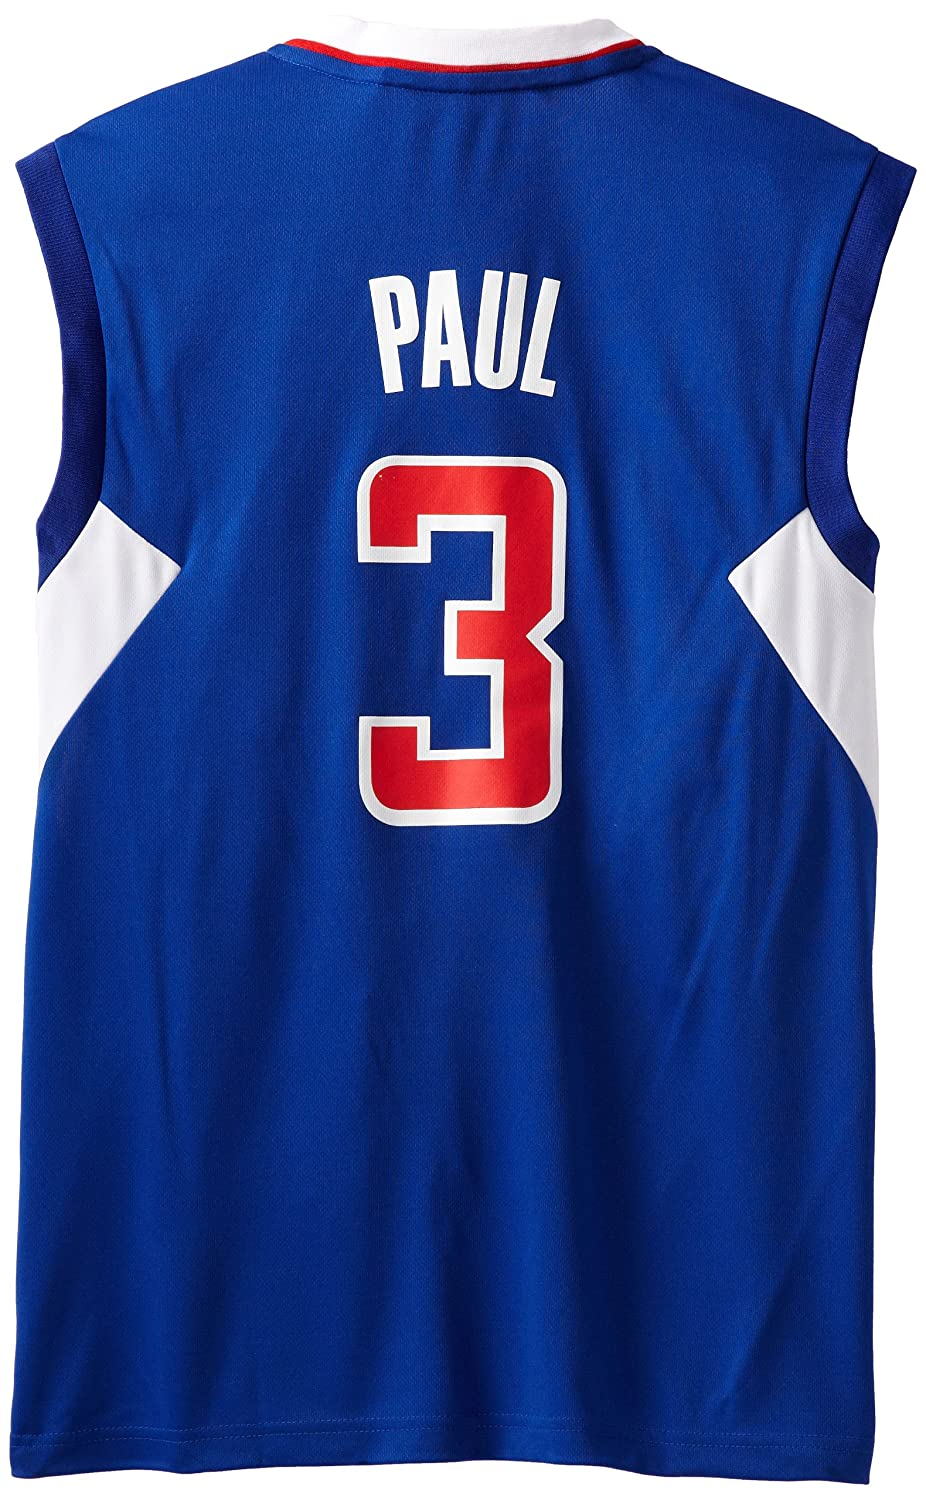 NBA Los Angeles Clippers - Camiseta réplica Azul Chris Paul # 3, Hombre, 7818A3R1AEB1532, Los Angeles Clippers, XX-Large: Amazon.es: Deportes y aire libre